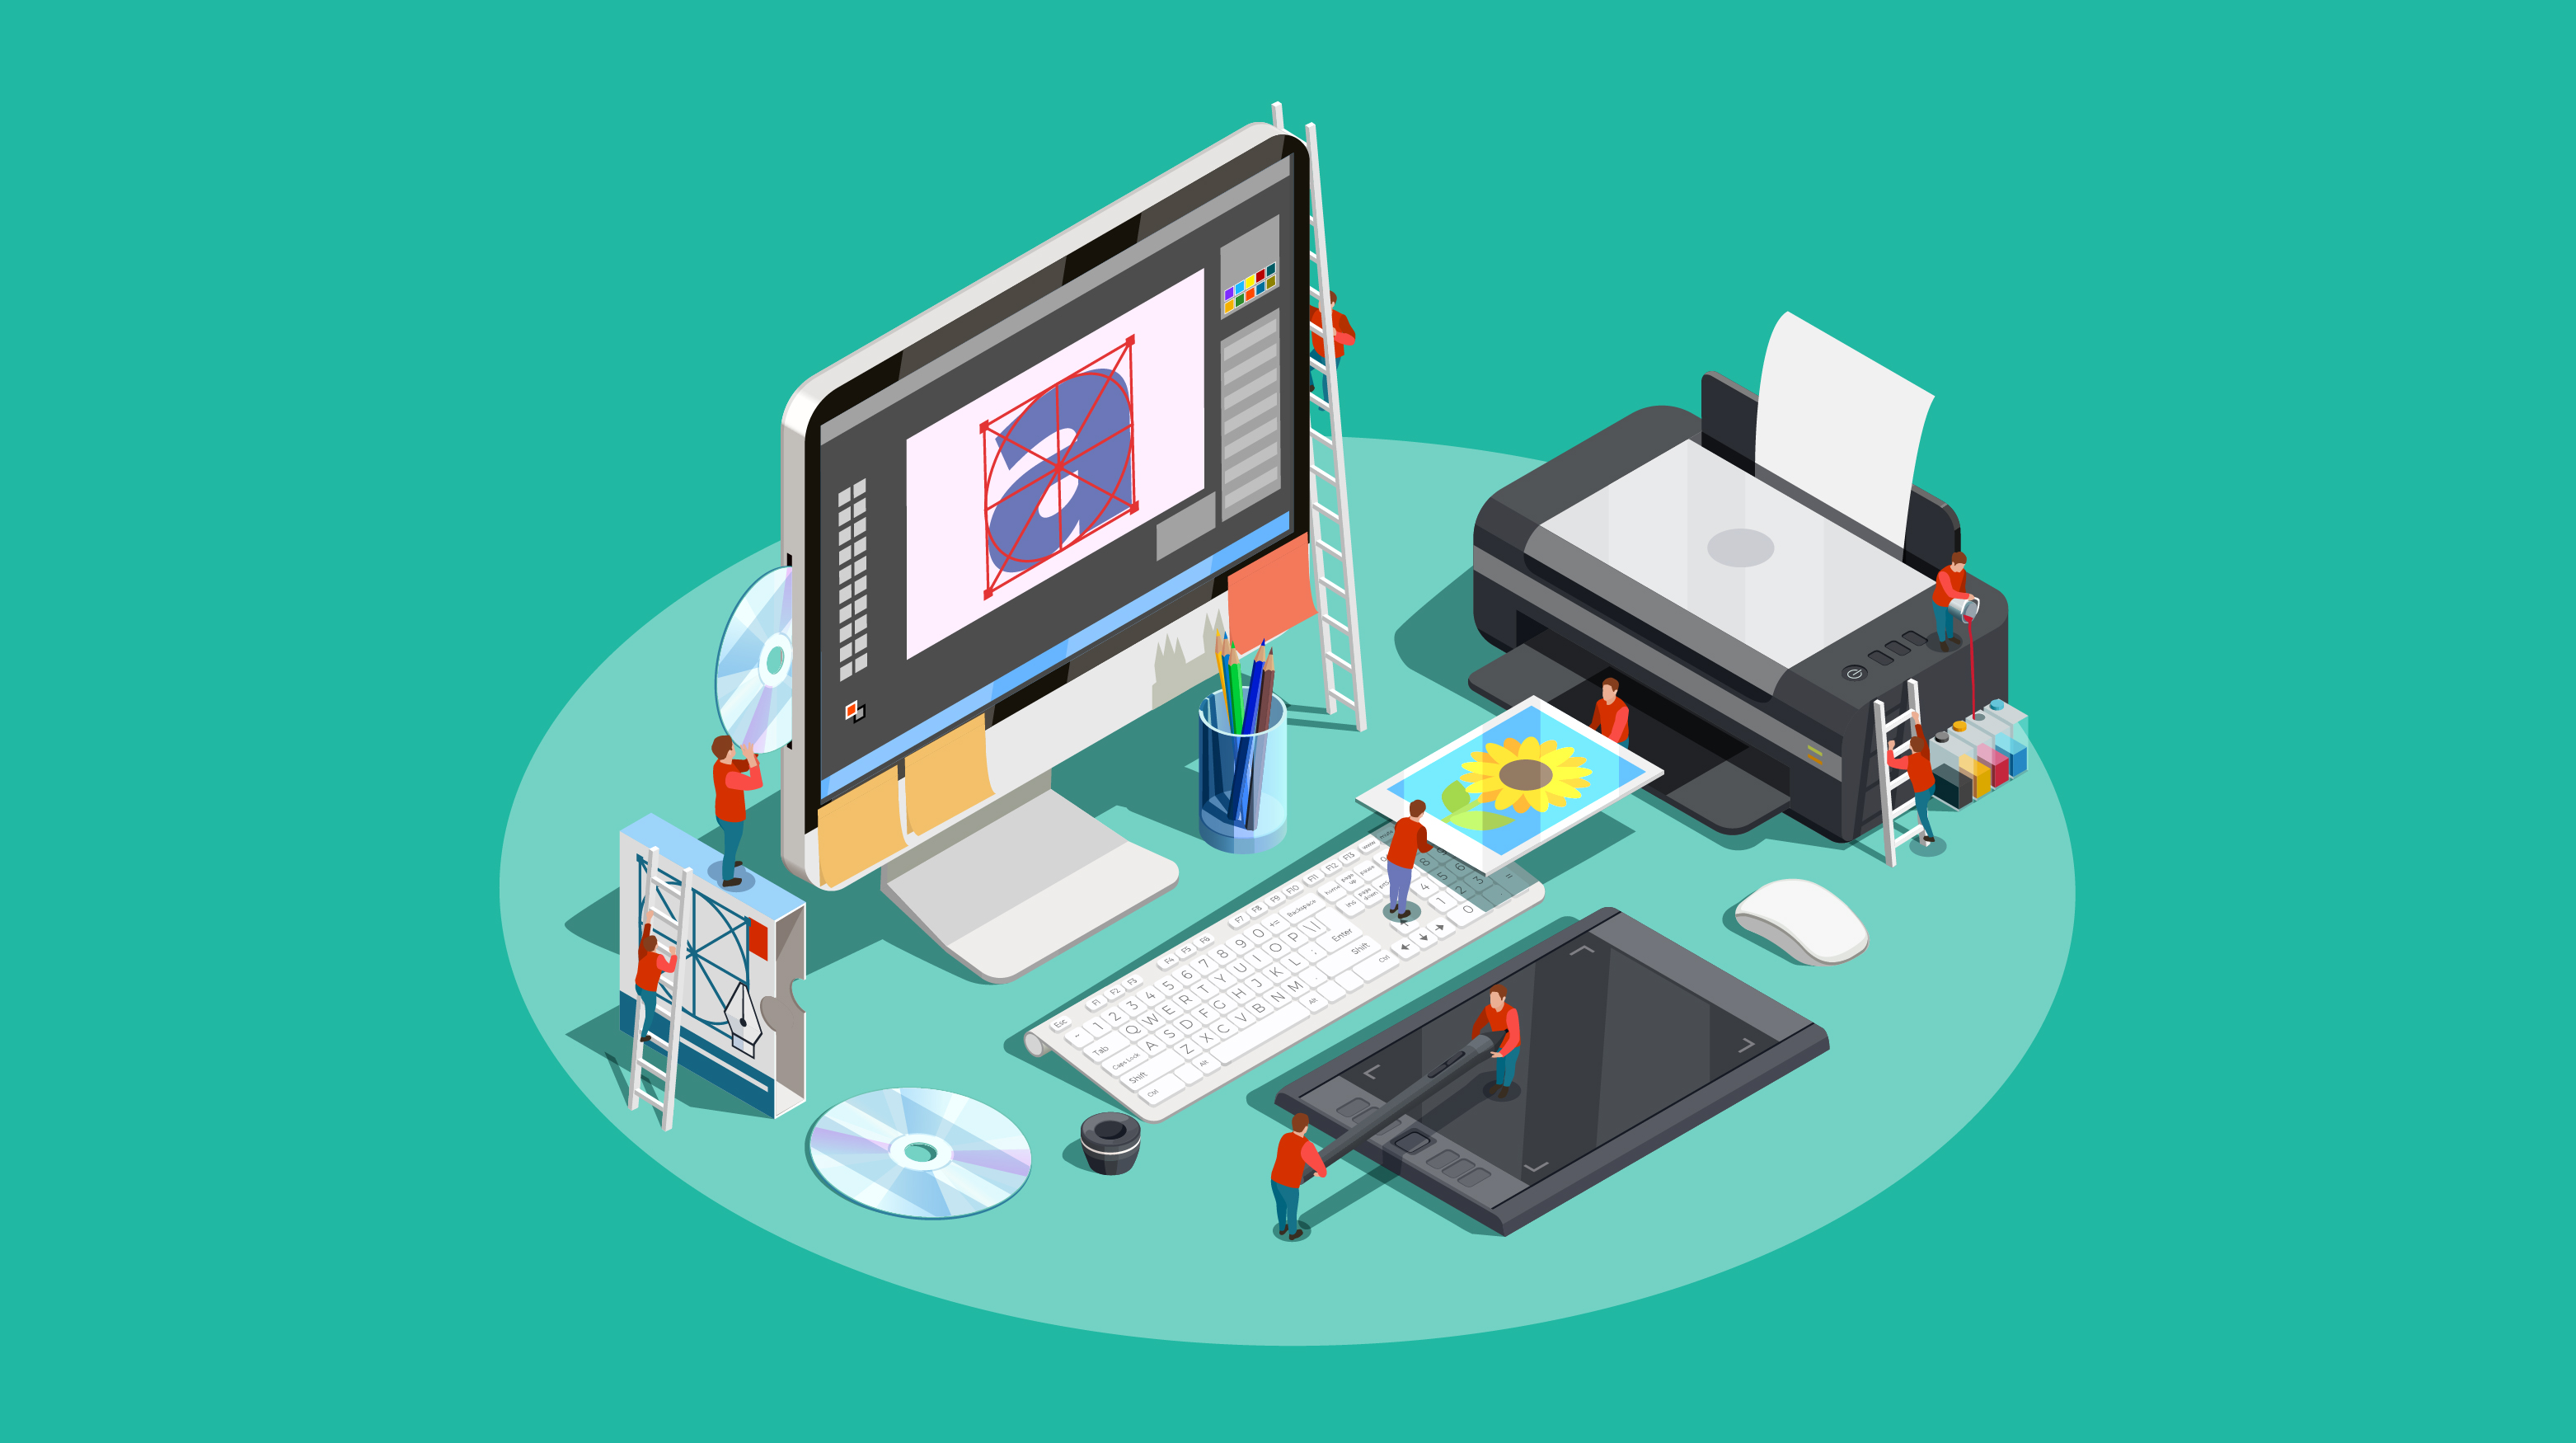 7 of the Best Tools to Create Mockup Design for Website